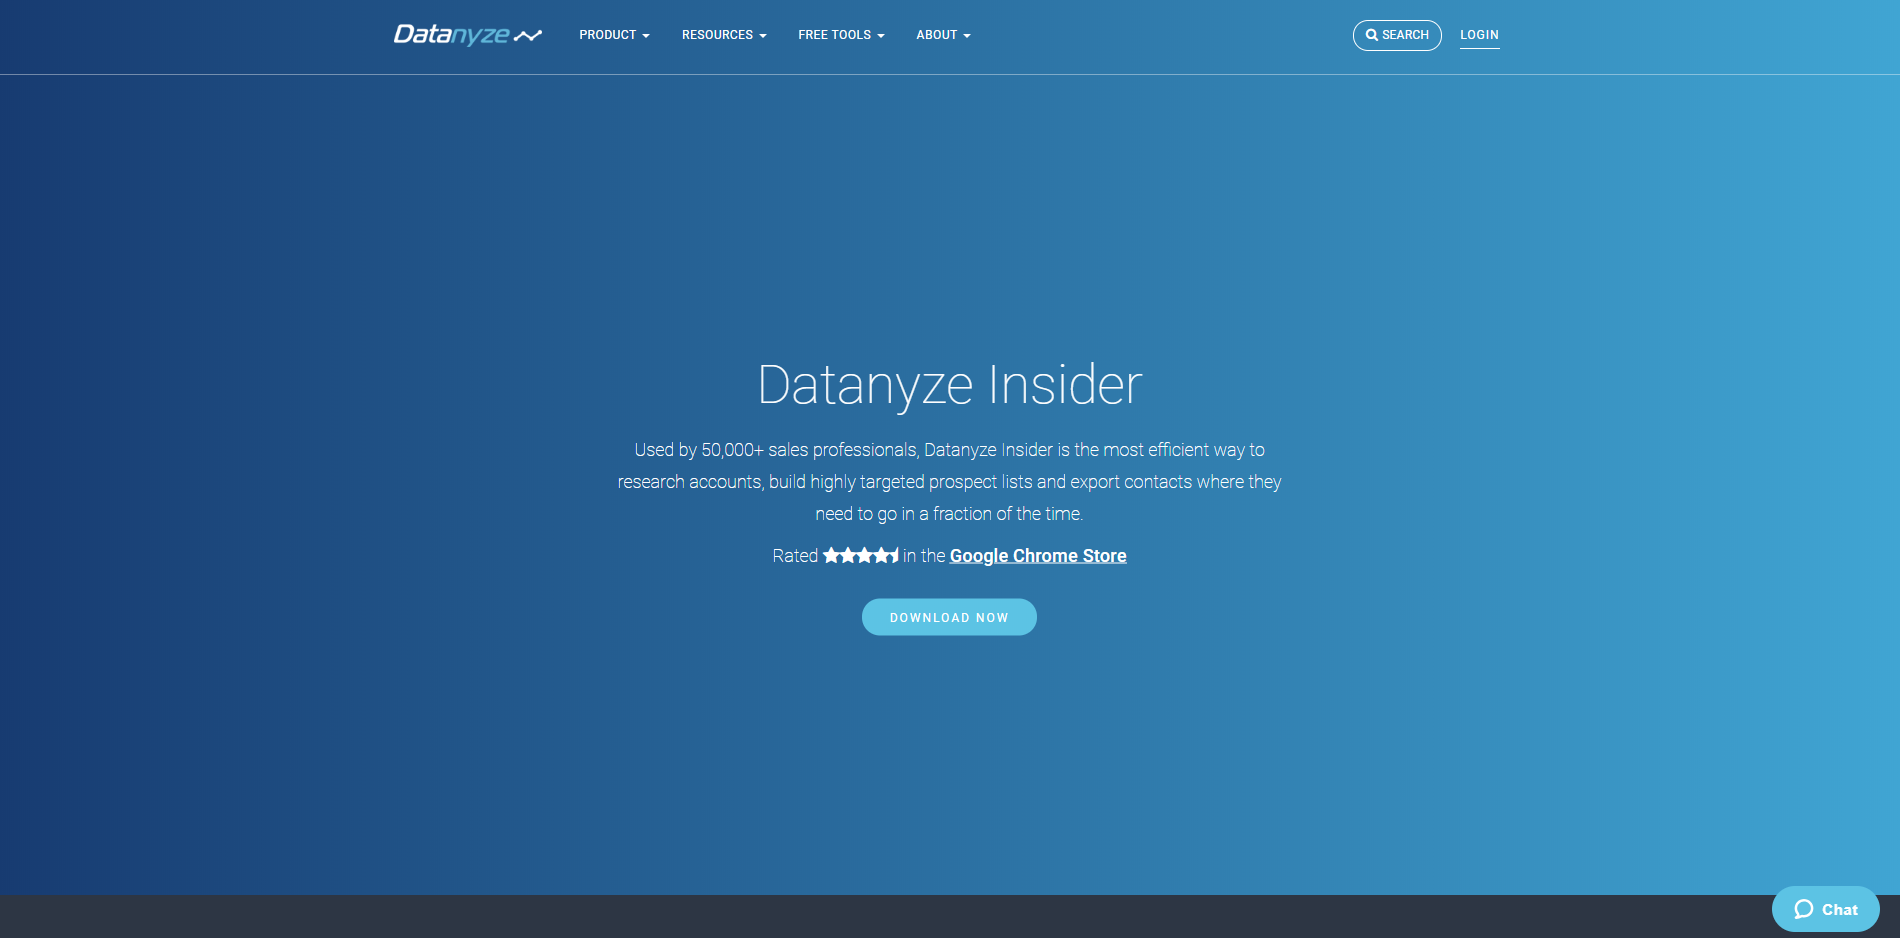 datanyze insider chrome extension sales productivity tool